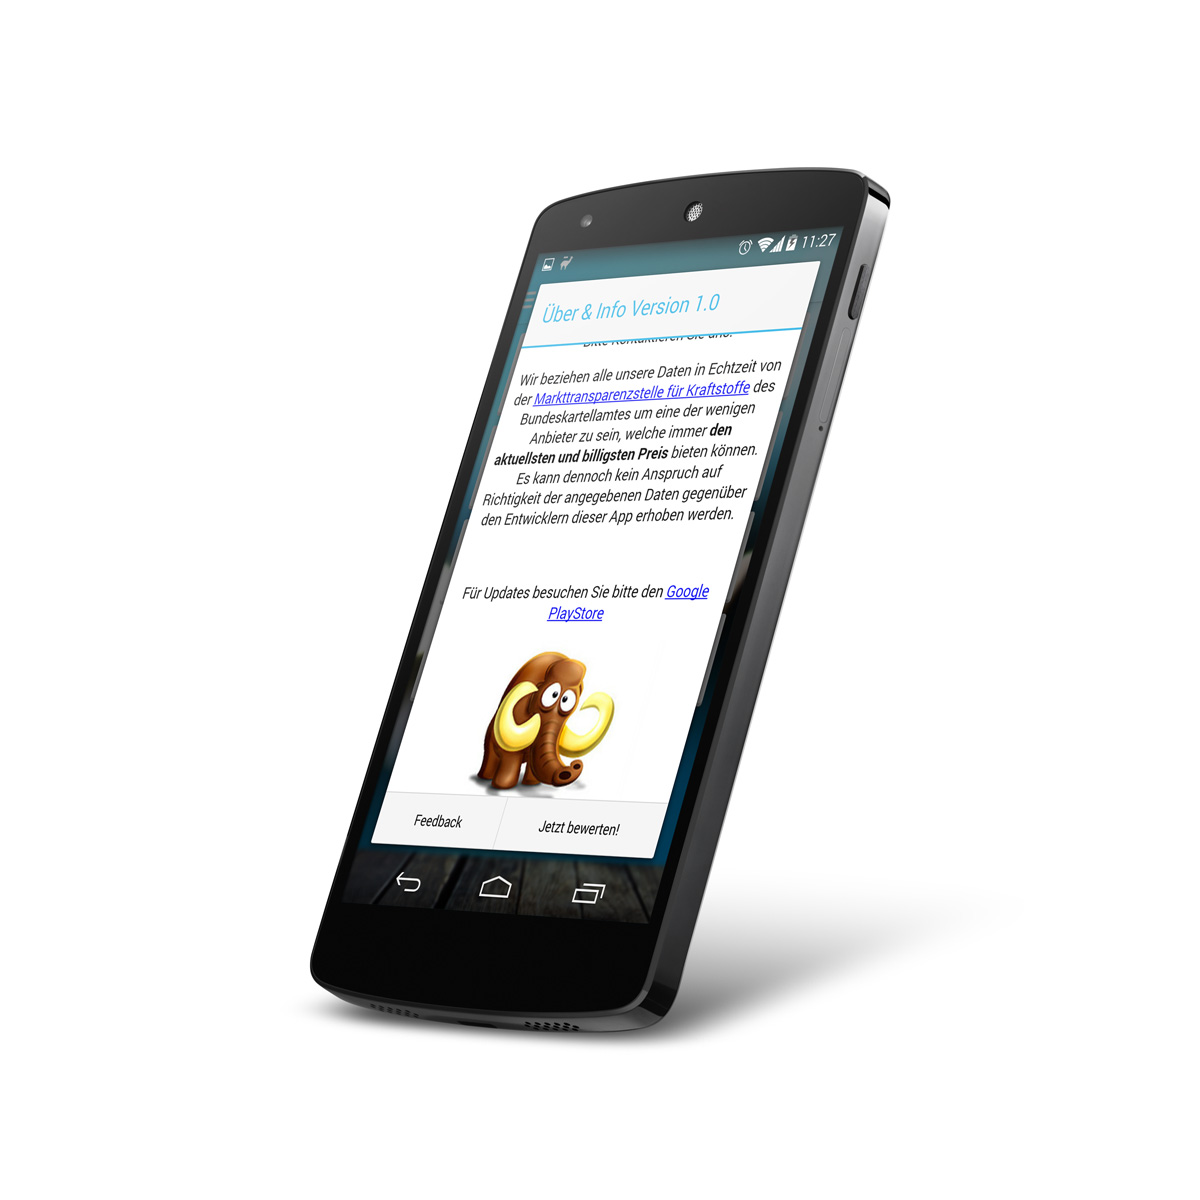 Android About & Share Dialog / WebView within Dialog